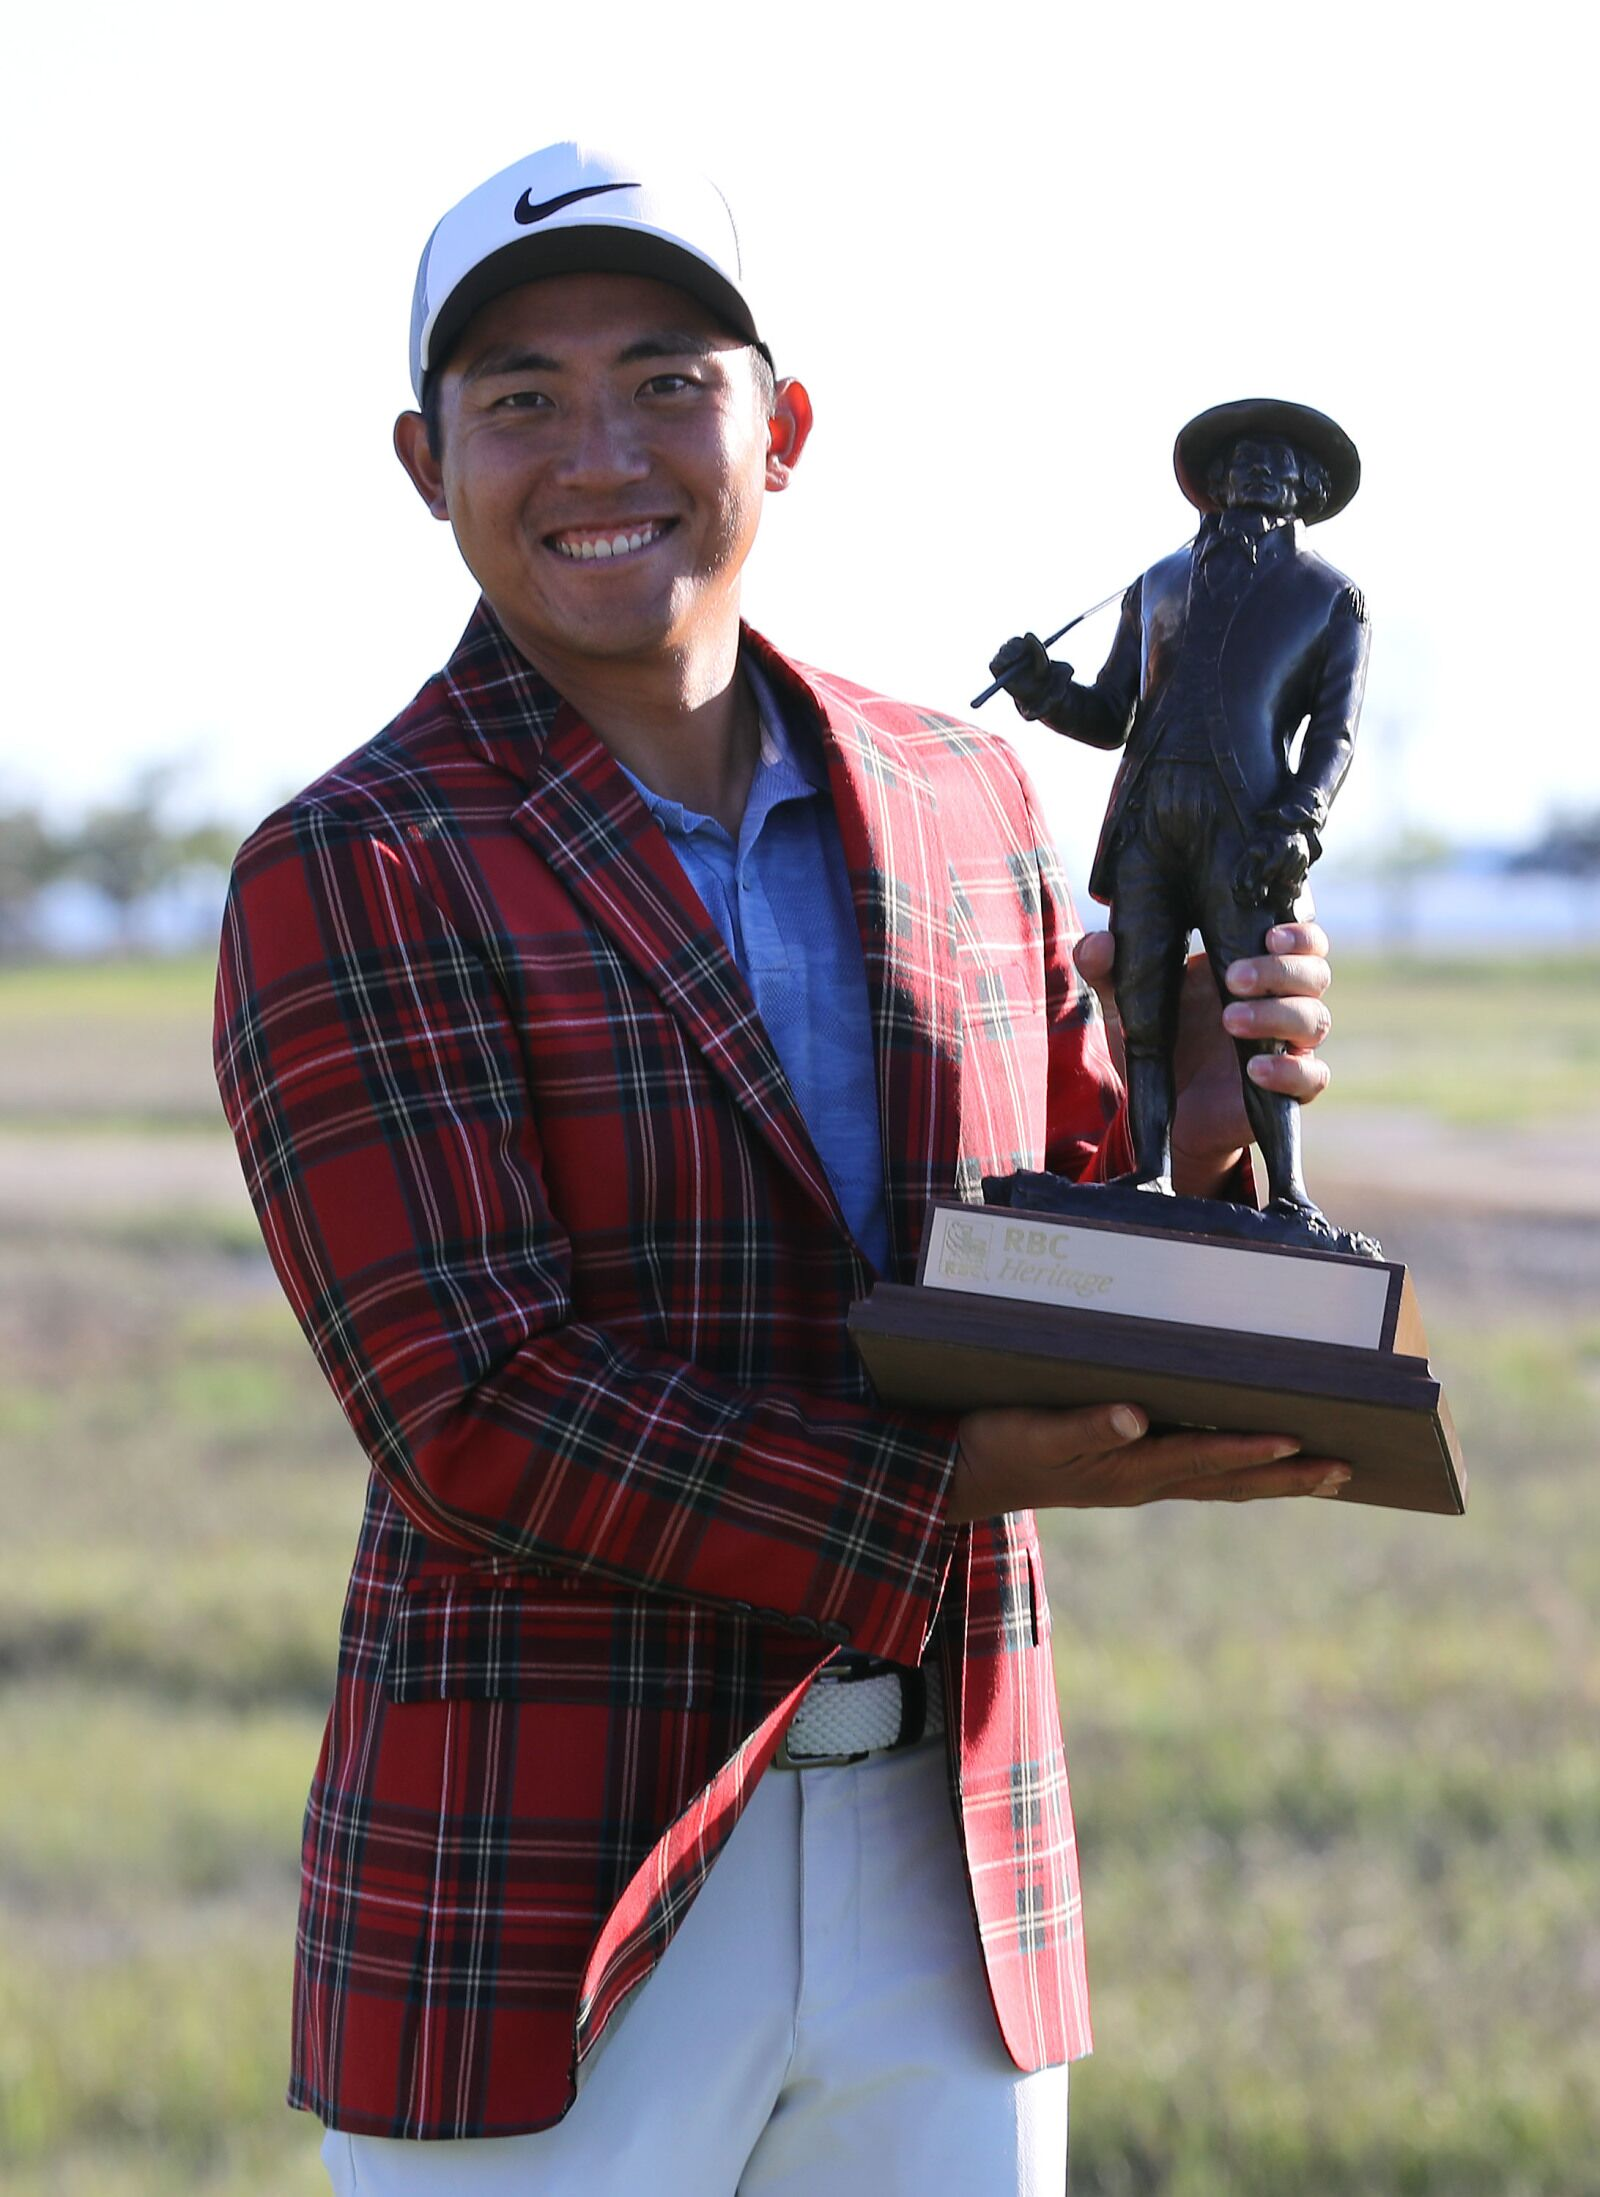 C.T. Pan on his path to the PGA TOUR, and following the success of Tiger Woods